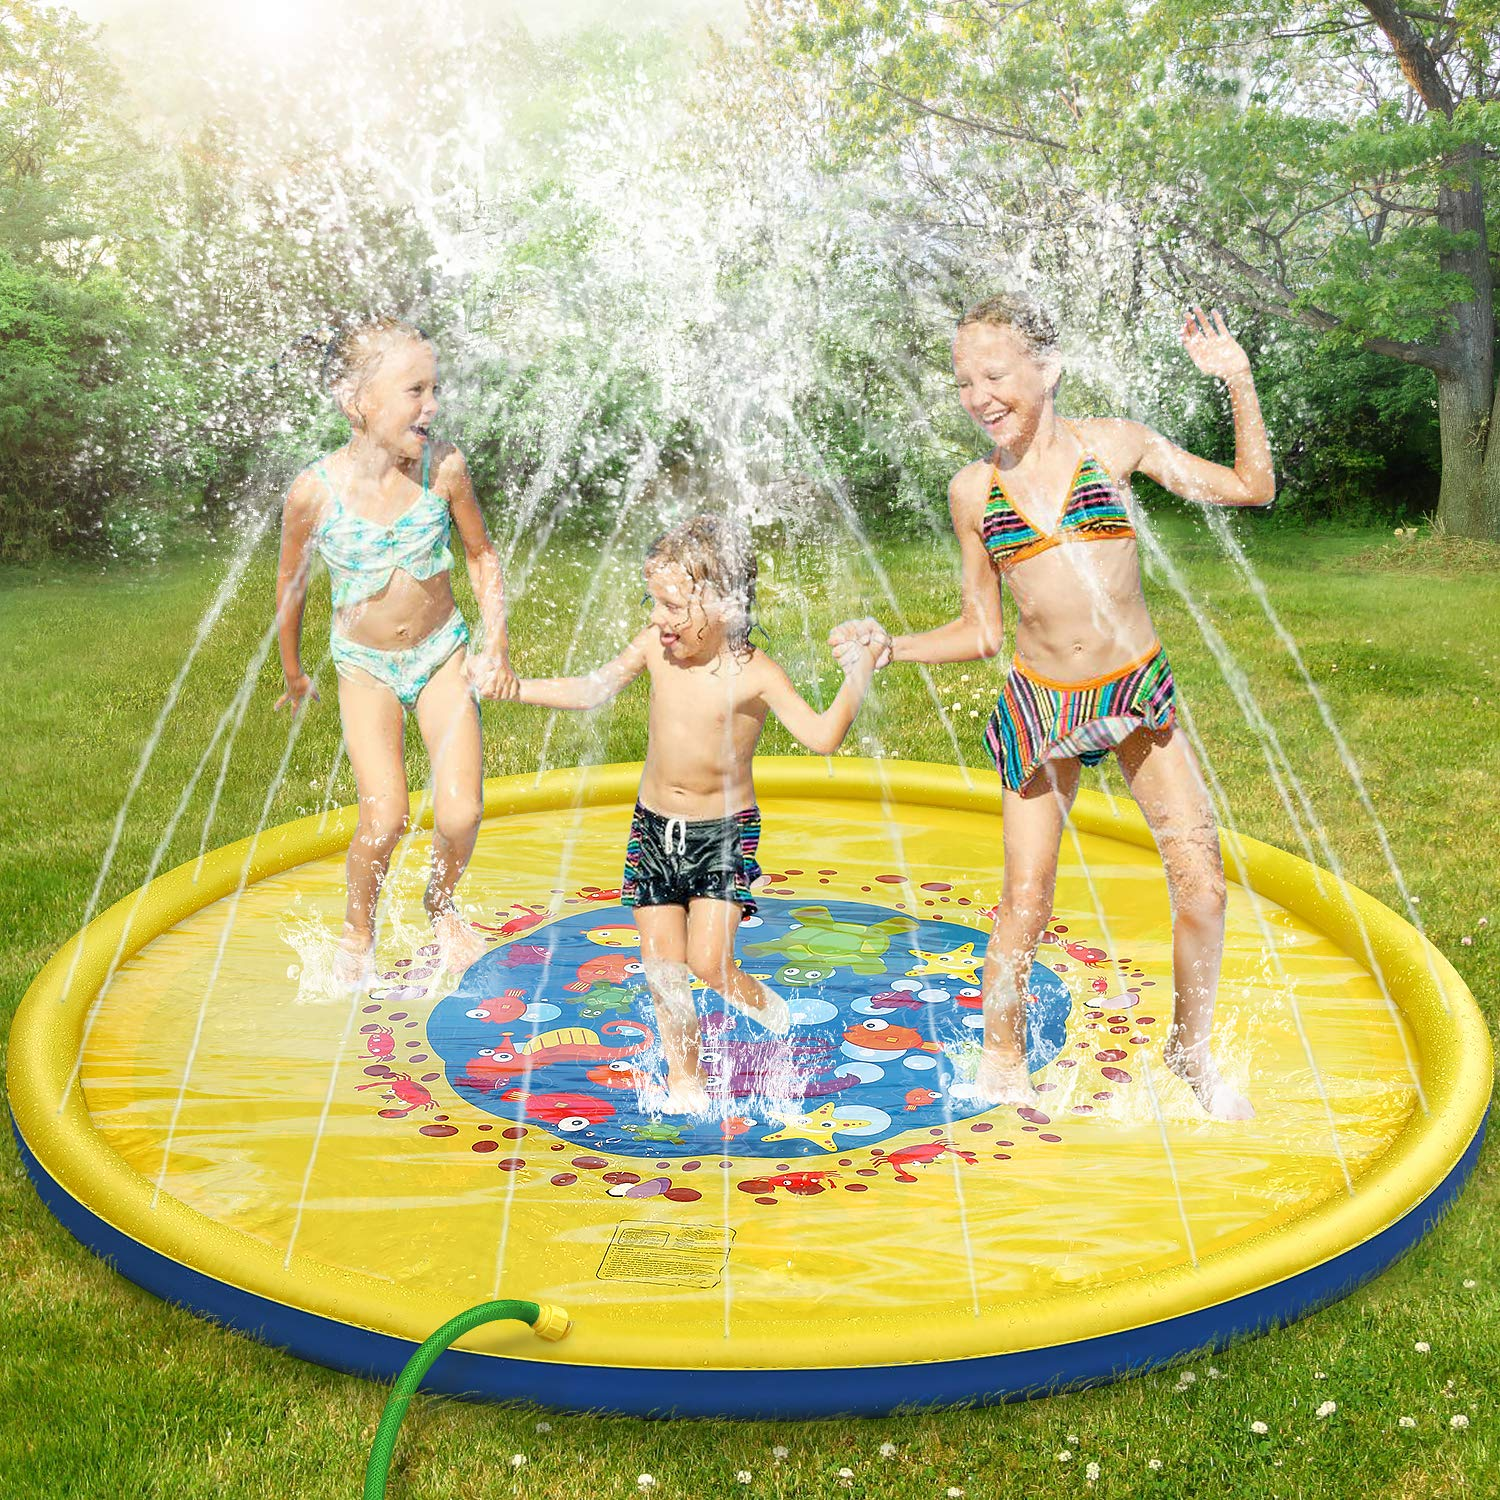 Splash Pad, 69 Inches No More Burst Sprinkle and Splash Play Mat Sprinkler for Kids Boys Girls Fun Splash Play Mat Summer Outdoor Sprinkler Pad Party Water Toys Extra Large Children's Sprinkler Pool by tomser